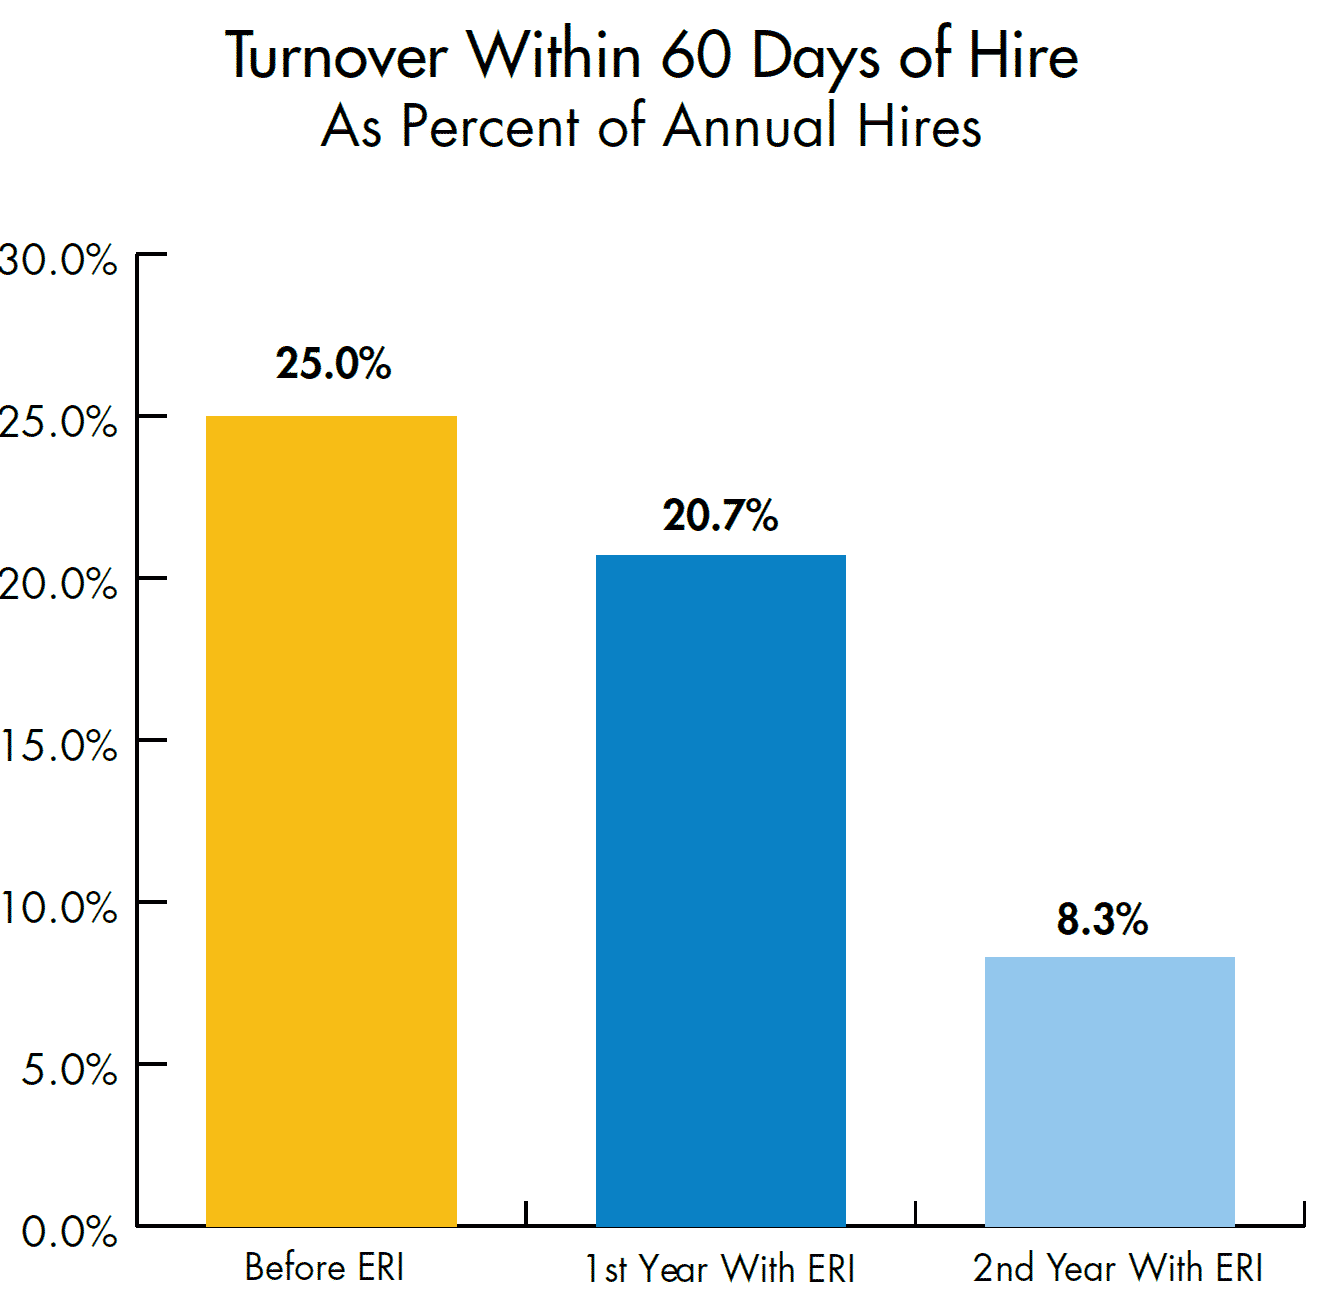 Turnover percentage in 2 years with ERI & without ERI